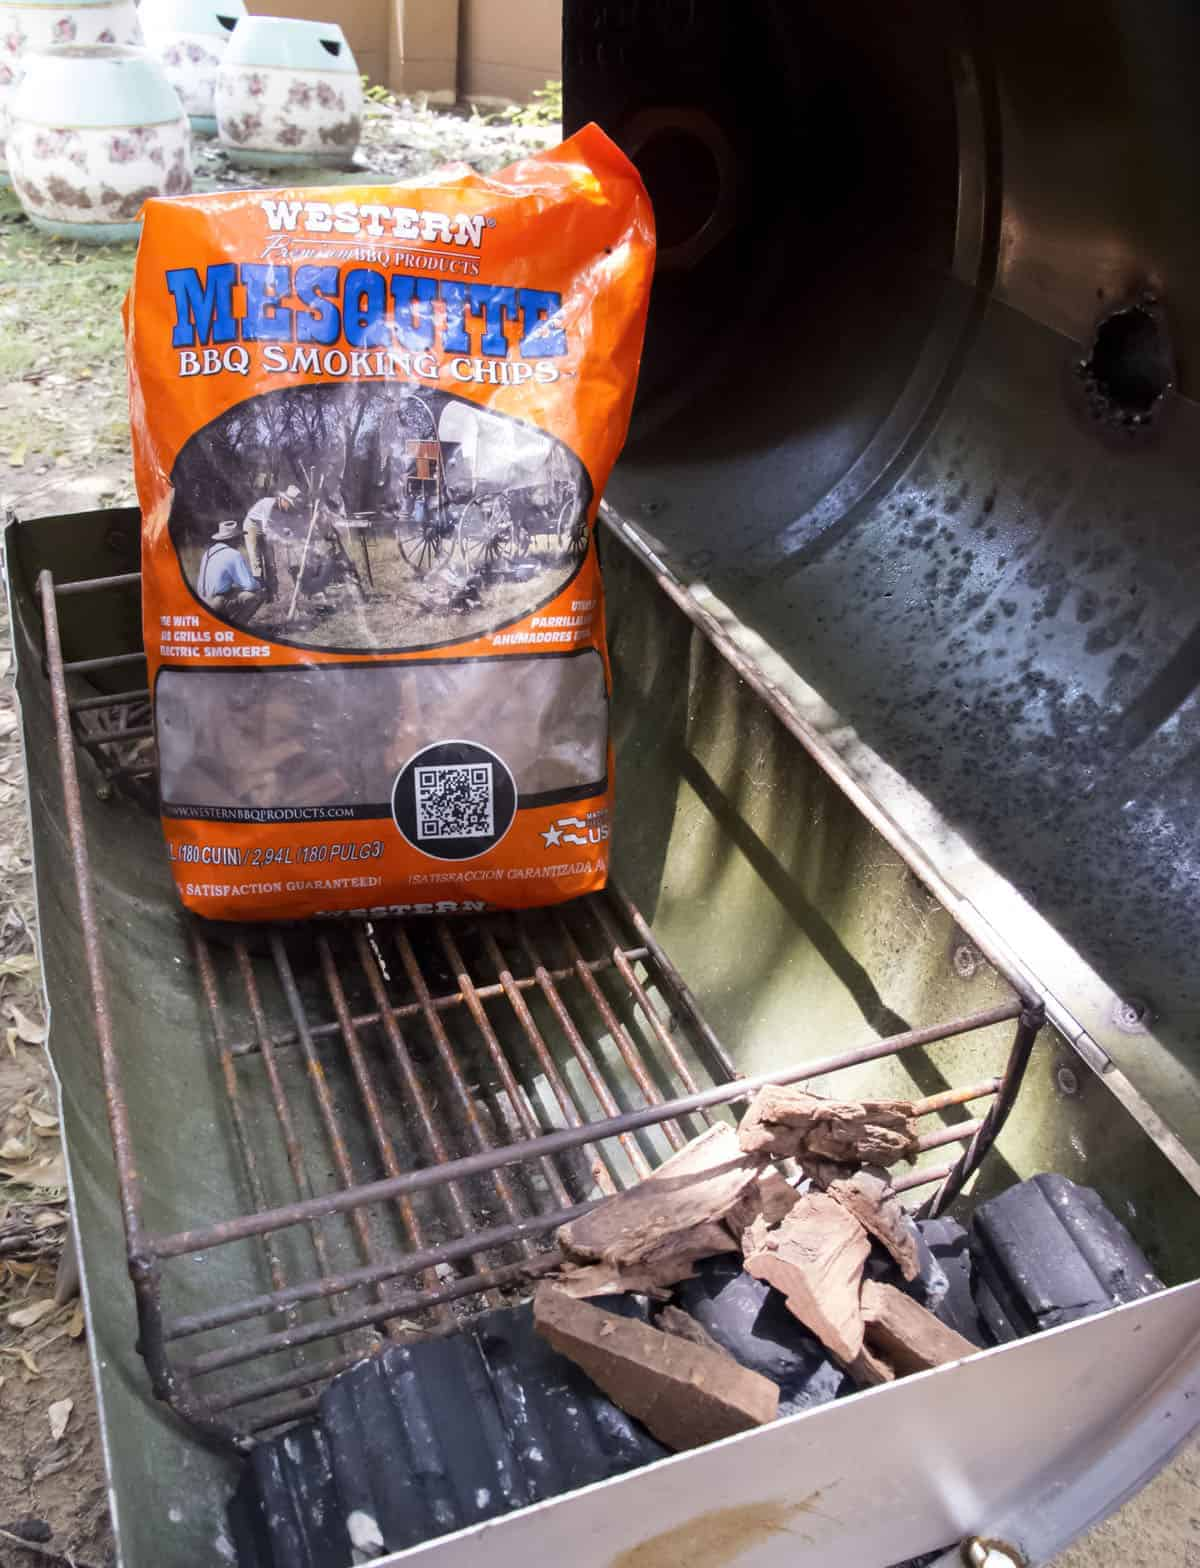 mesquite smoking chips and charcoal in barbecue grill on backyard